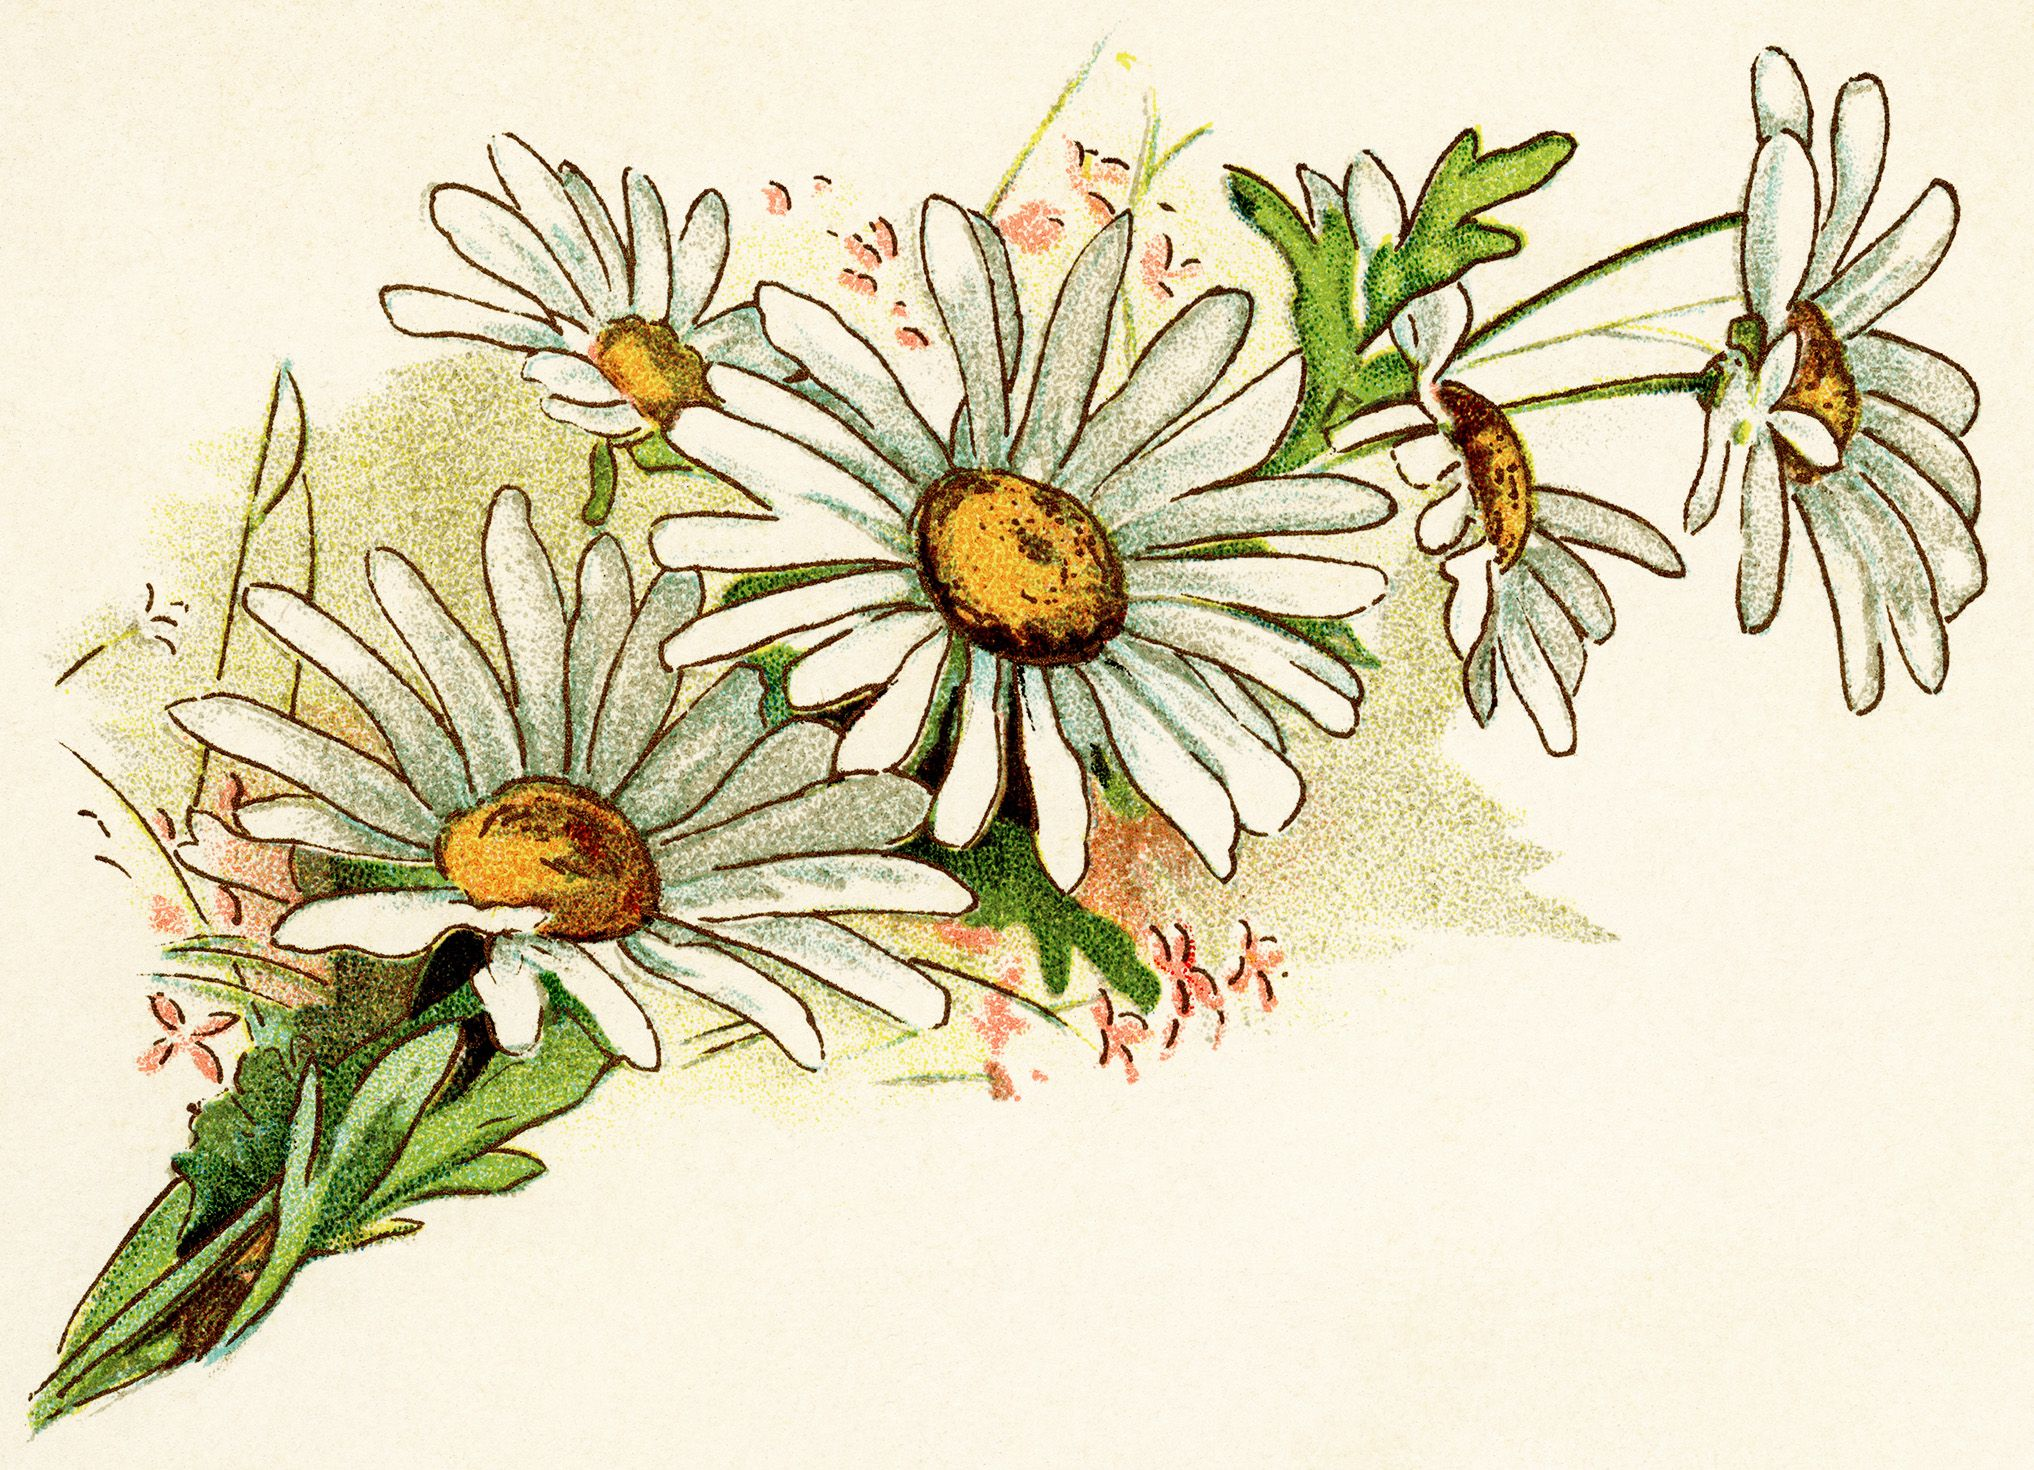 hight resolution of vintage daisy image free digital floral graphics cluster of daisies illustration old fashioned daisy clipart bouquet of daisies printable